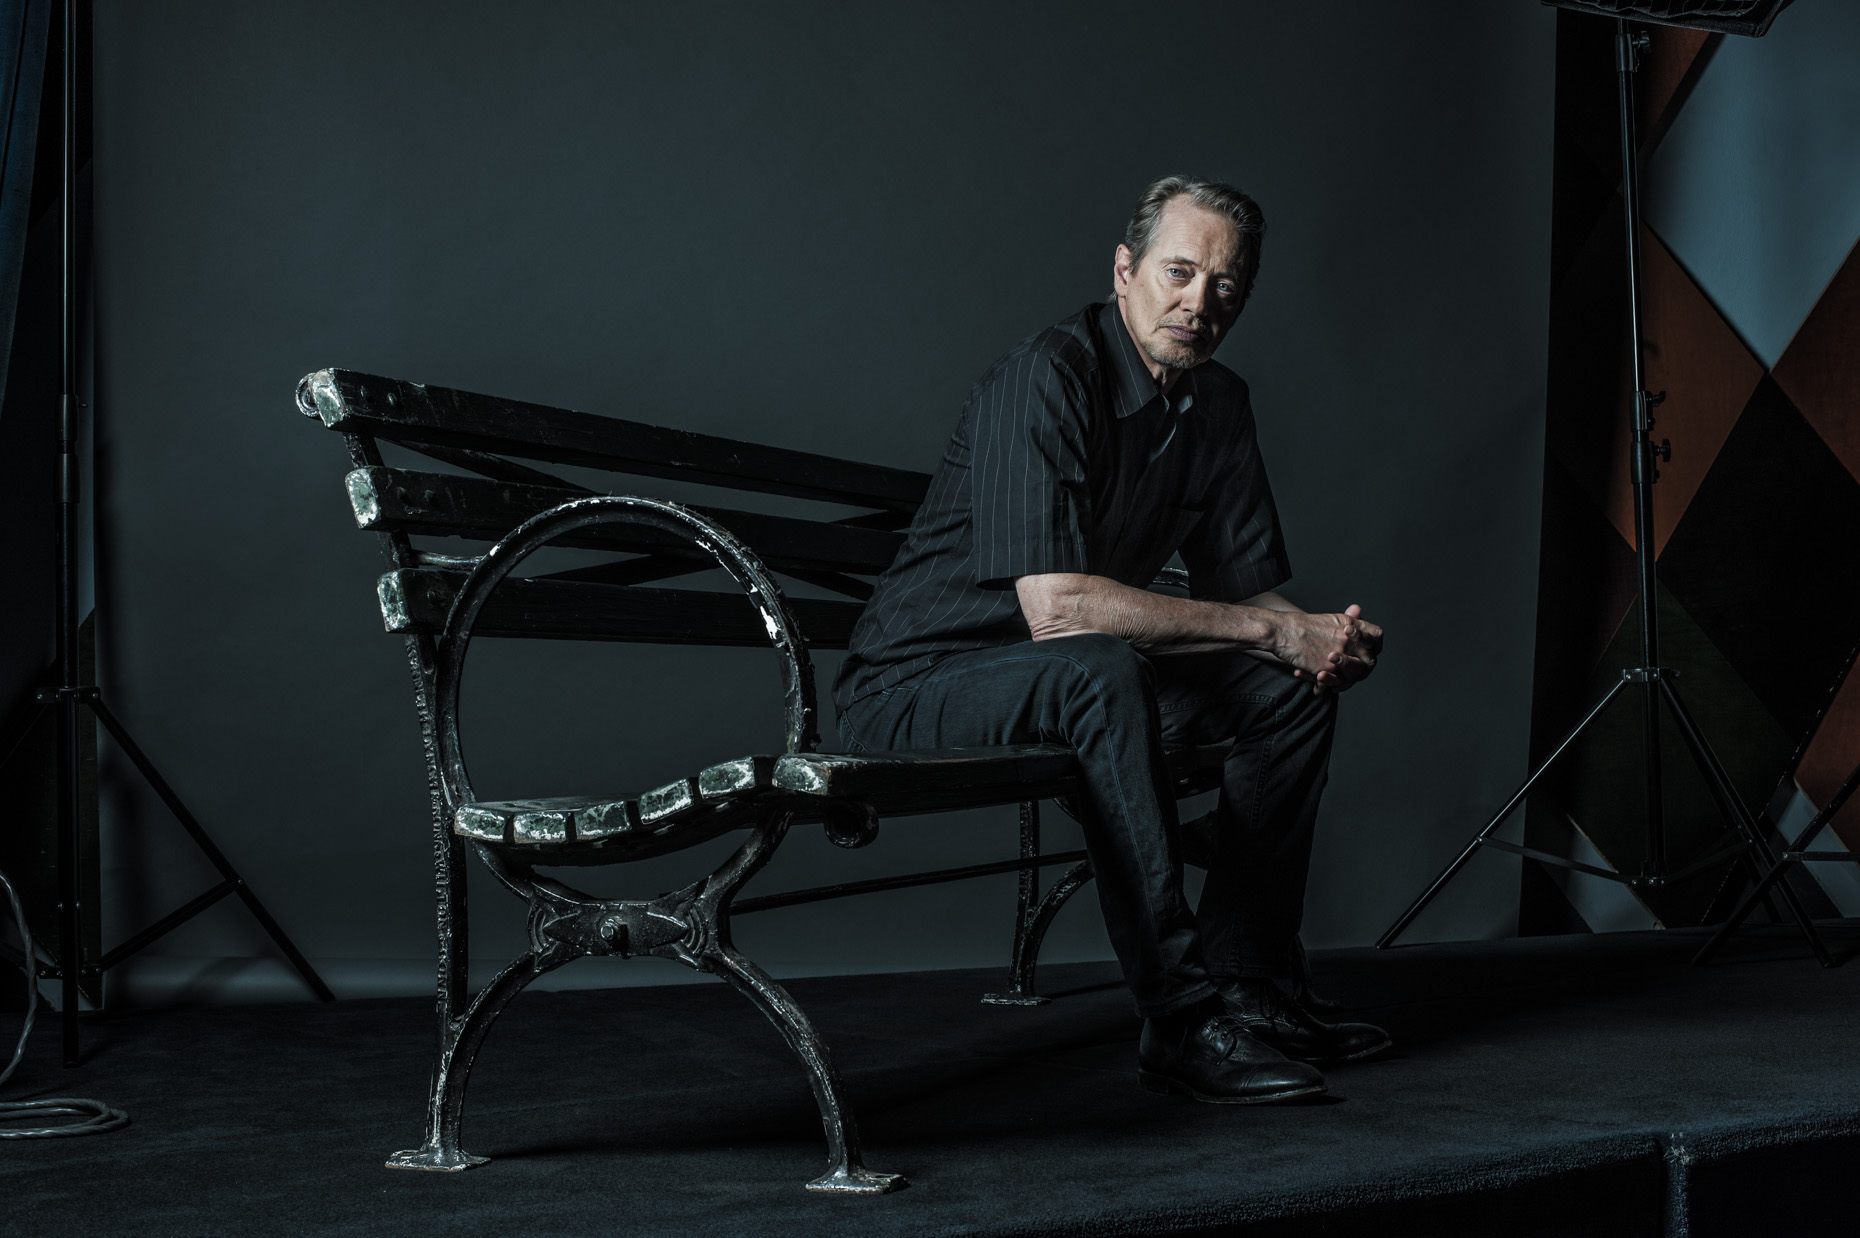 Steve Buscemi | Park Bench | NYC editorial photographer